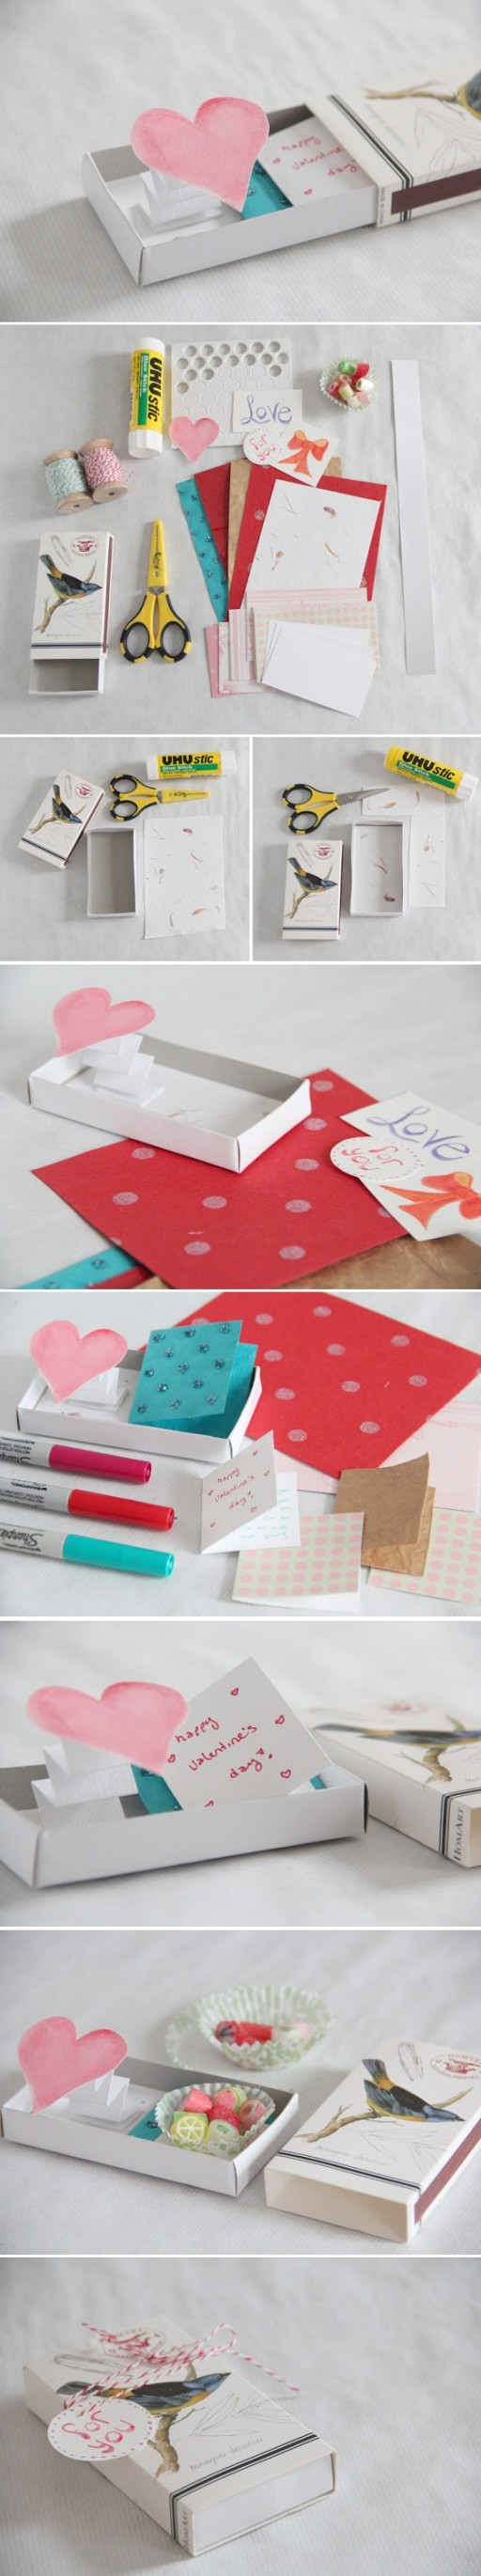 How To Make Pop Up Love Gift Box Step By Step DIY Tutorial Instructions 2